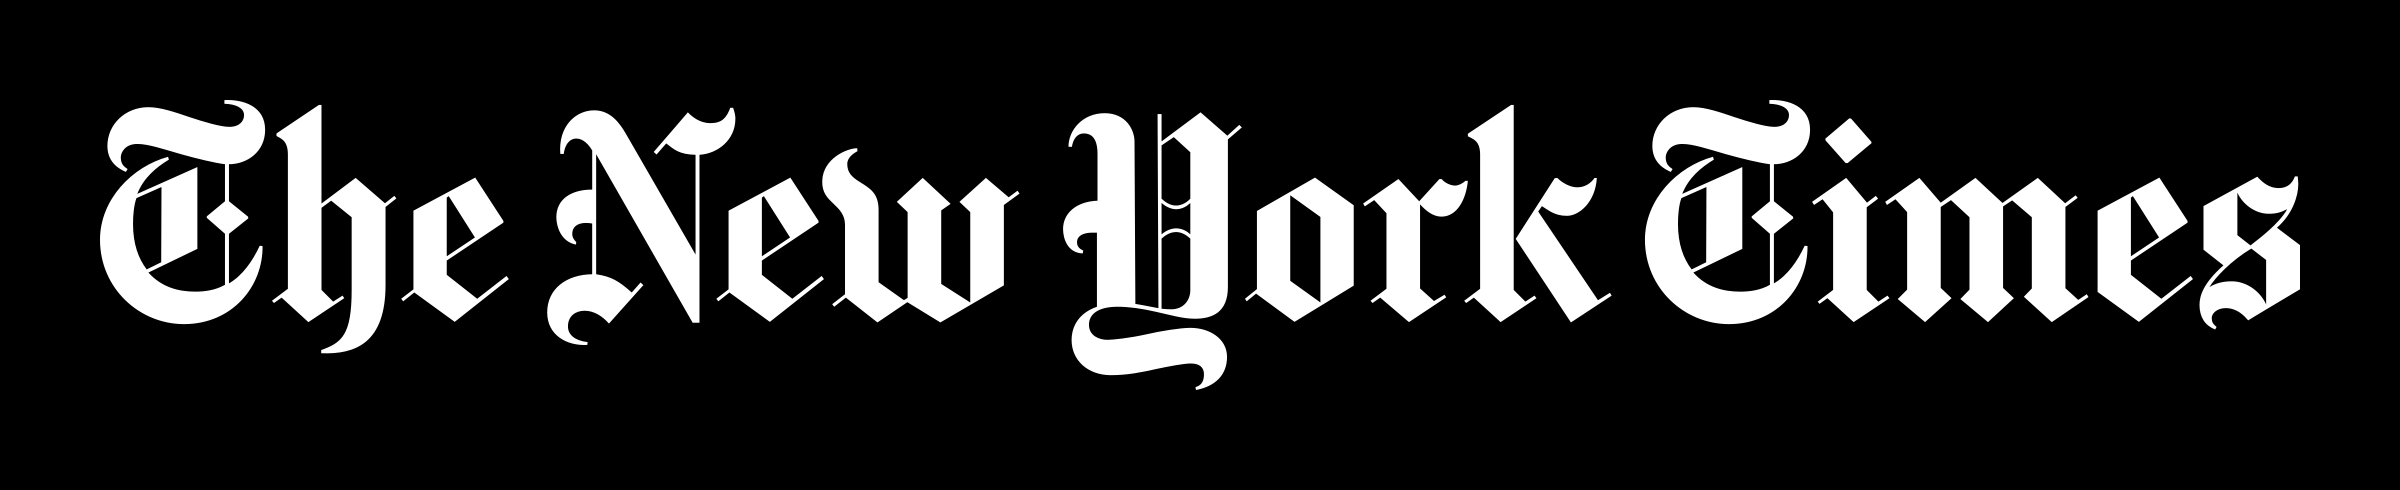 new-york-times-logo-black-and-white.png